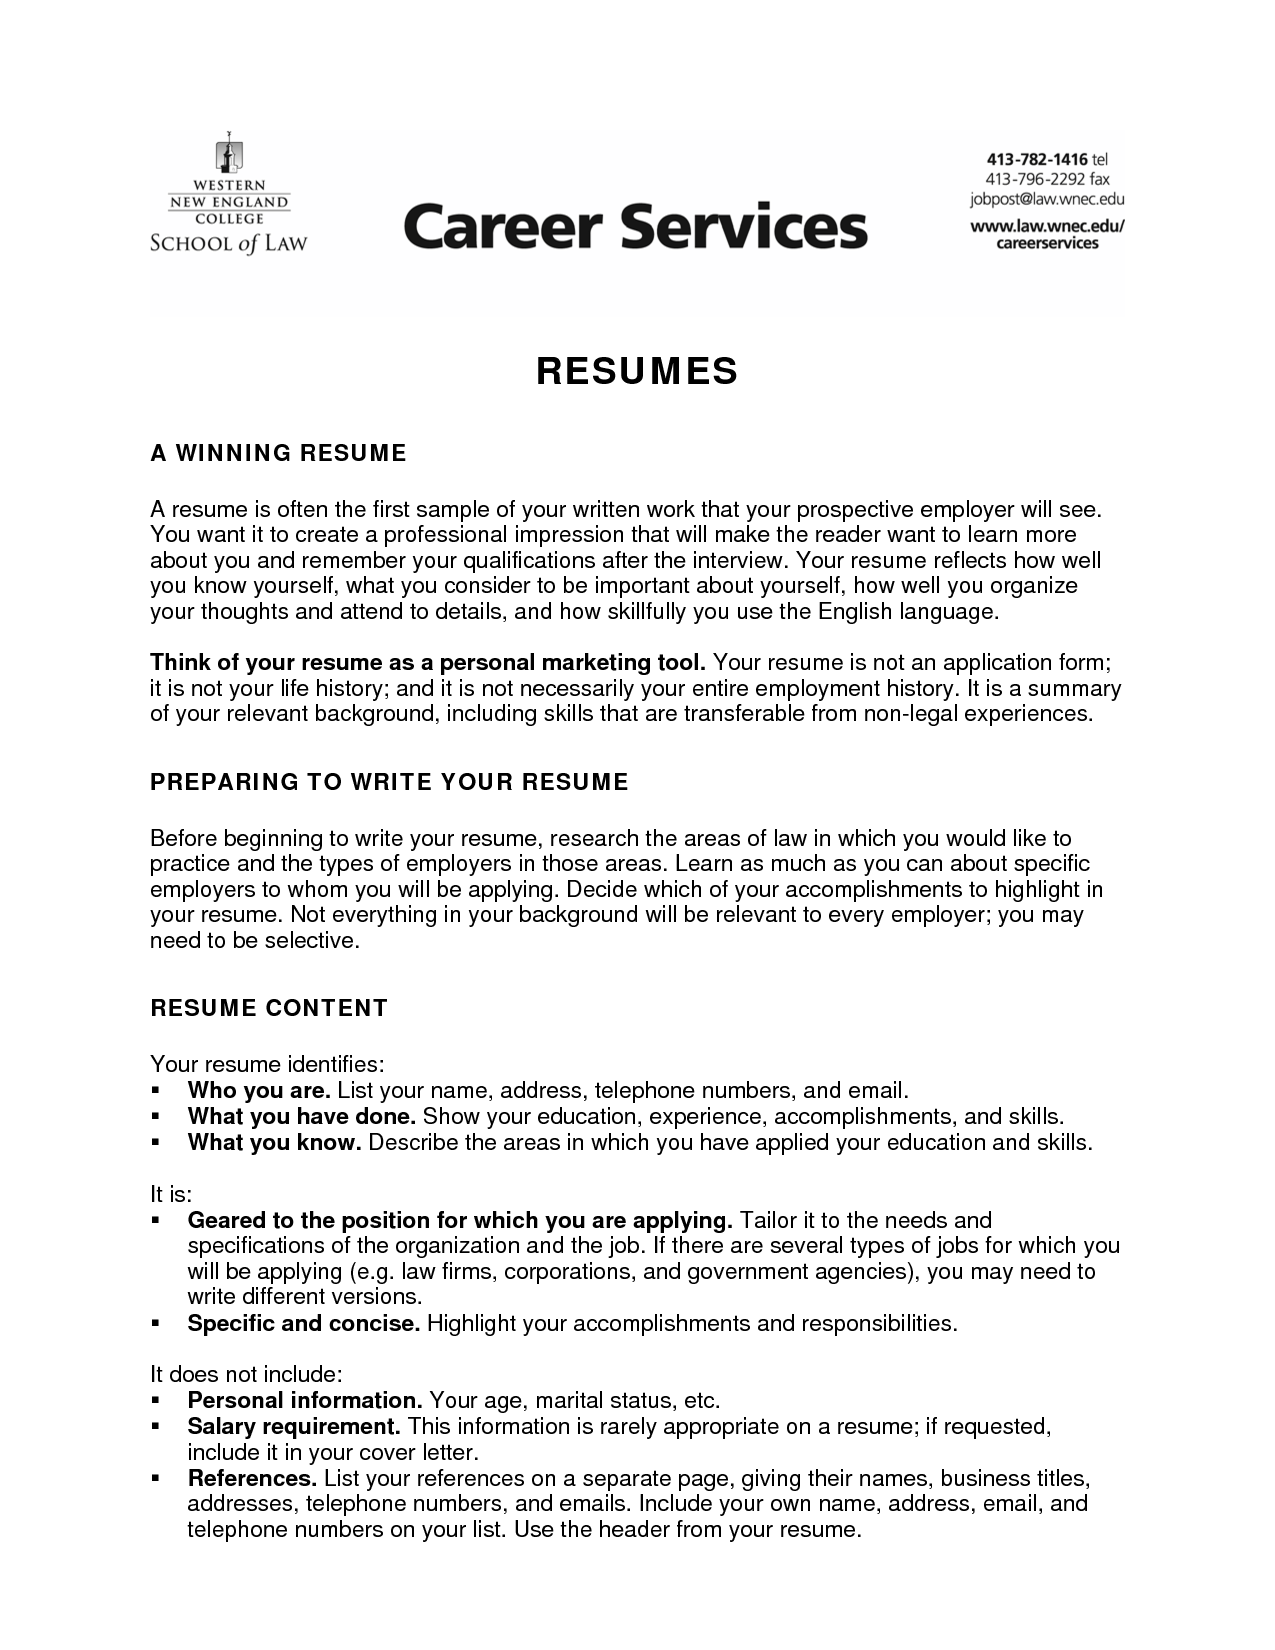 Career Services Resumes Boatremyeaton